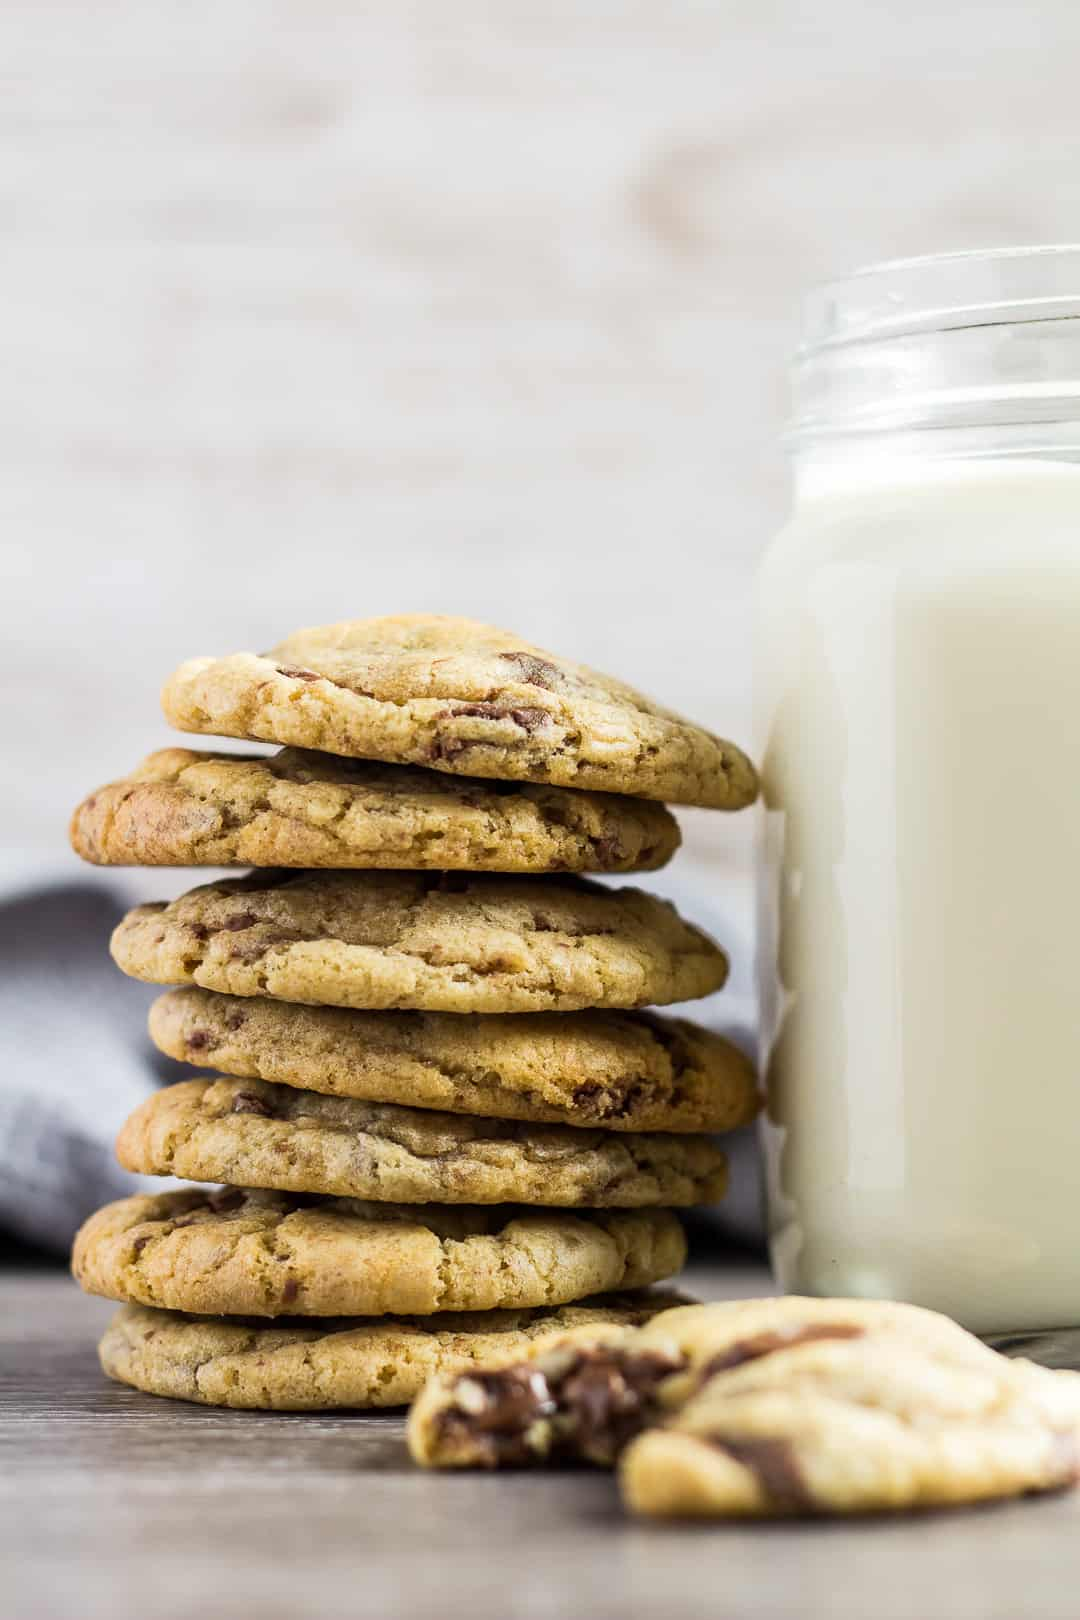 Tall stack of Chocolate Chip Cookies next to glass of milk.